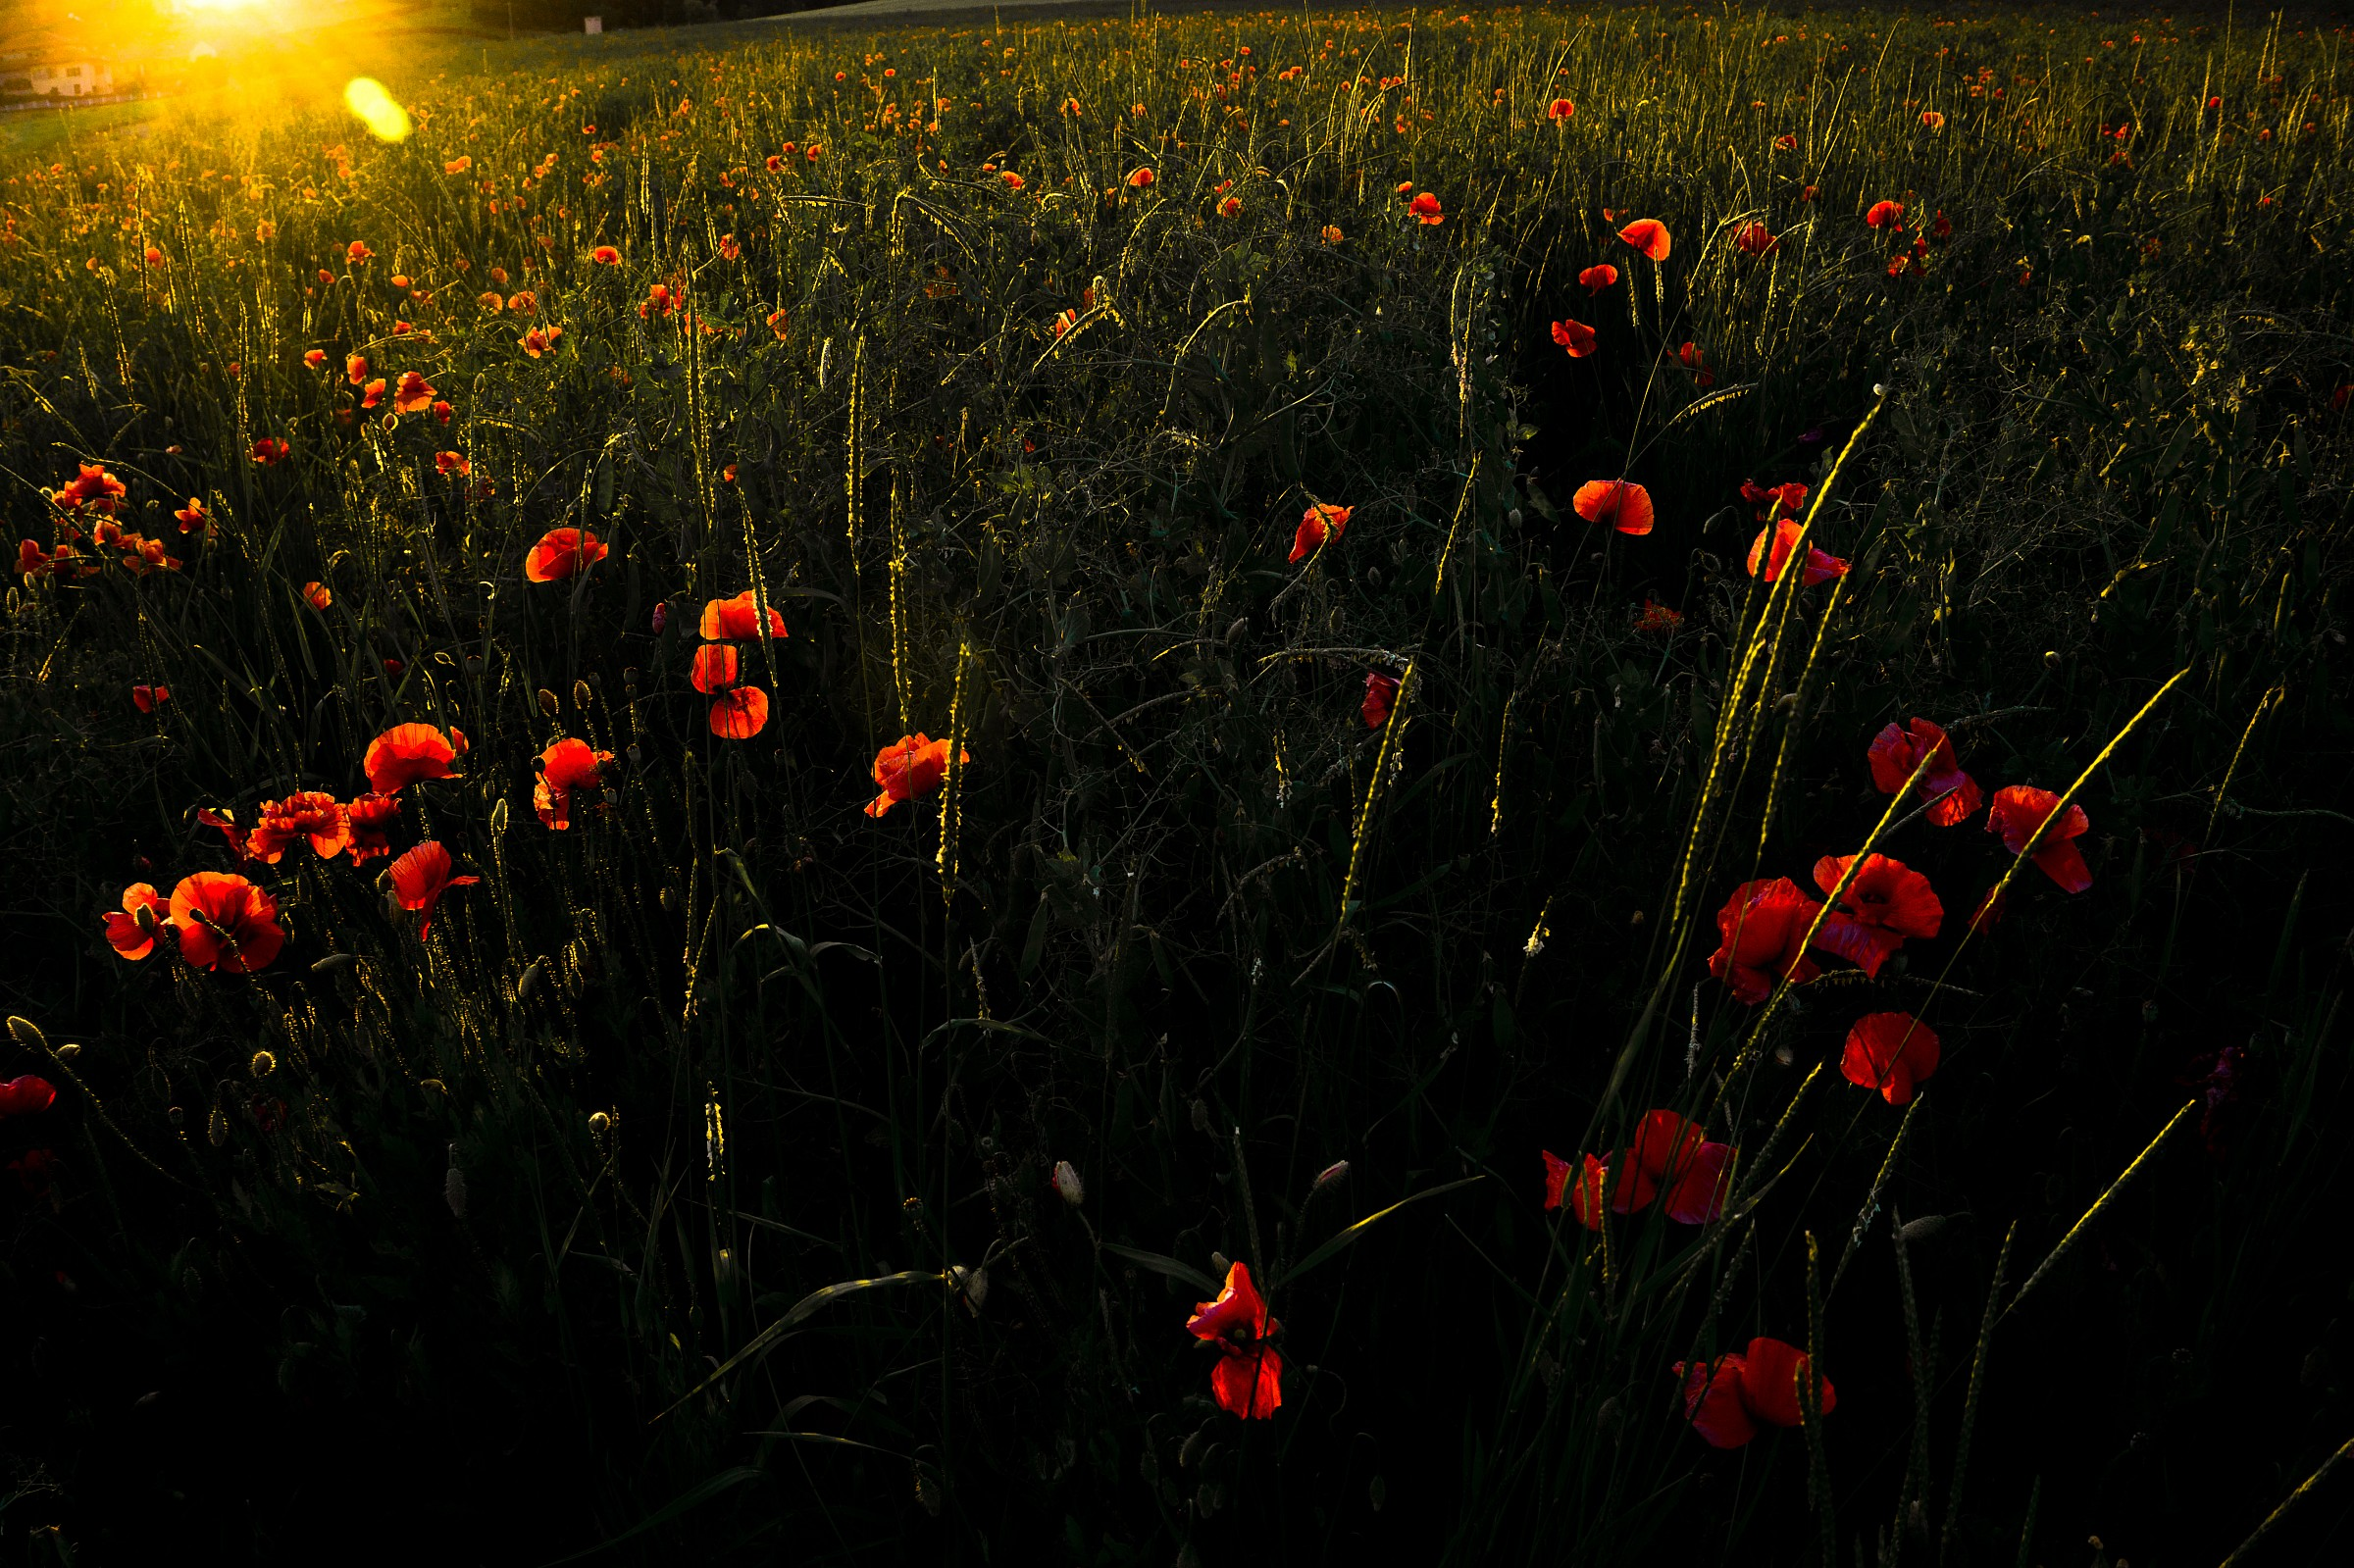 1000 red poppies...